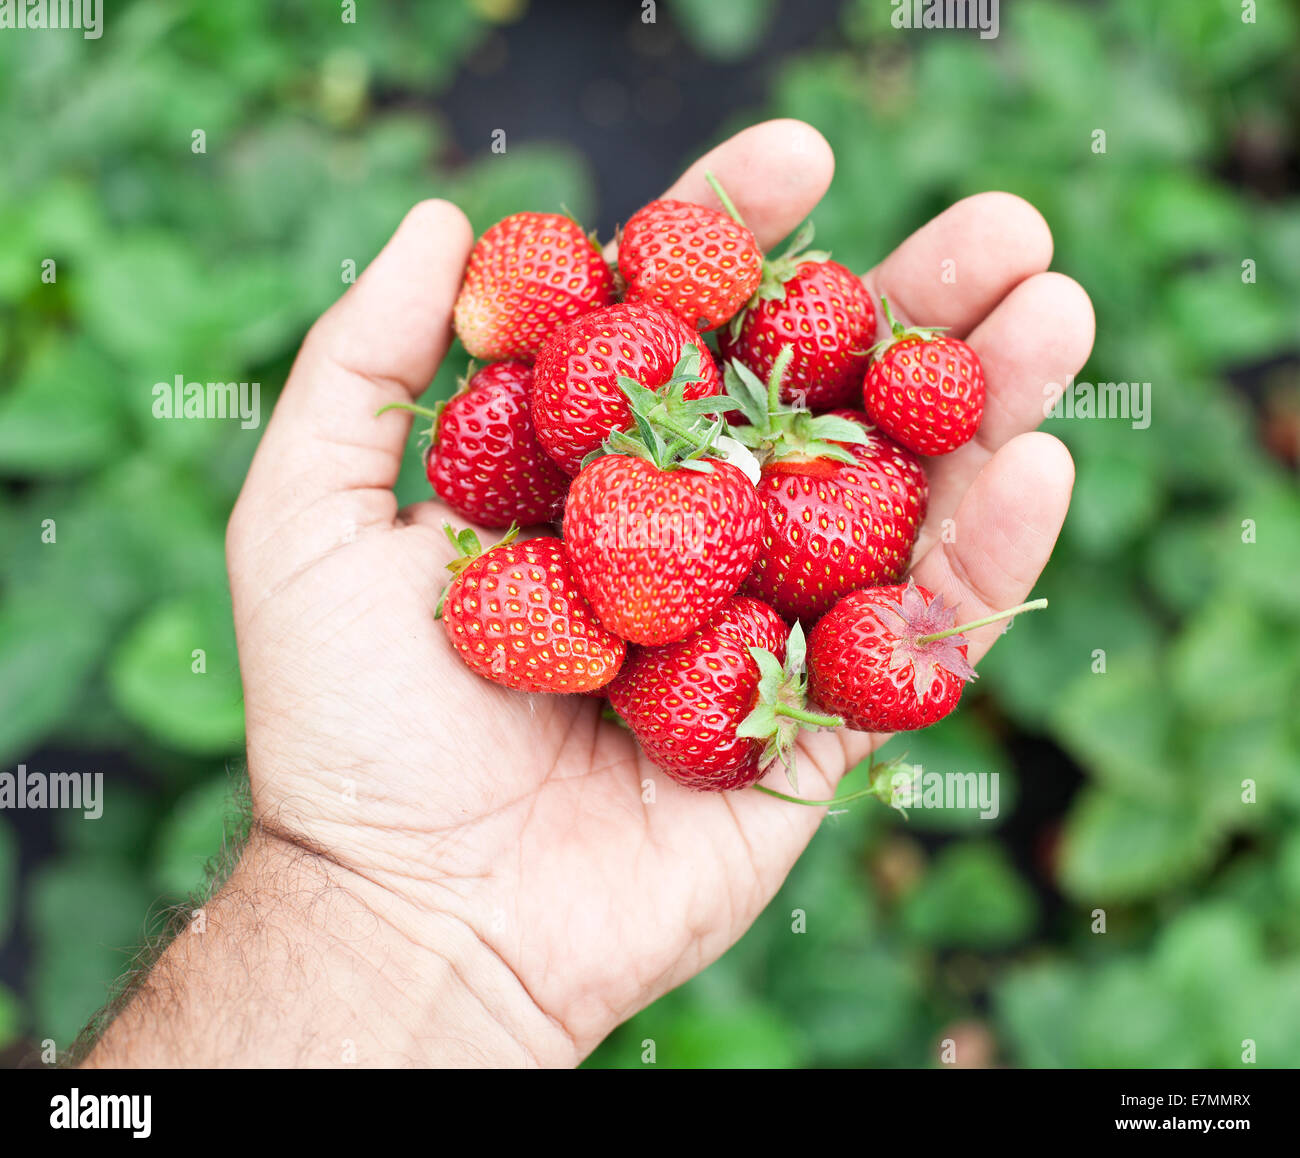 Strawberry fruits in a man's hands. Green leaves on the background. - Stock Image